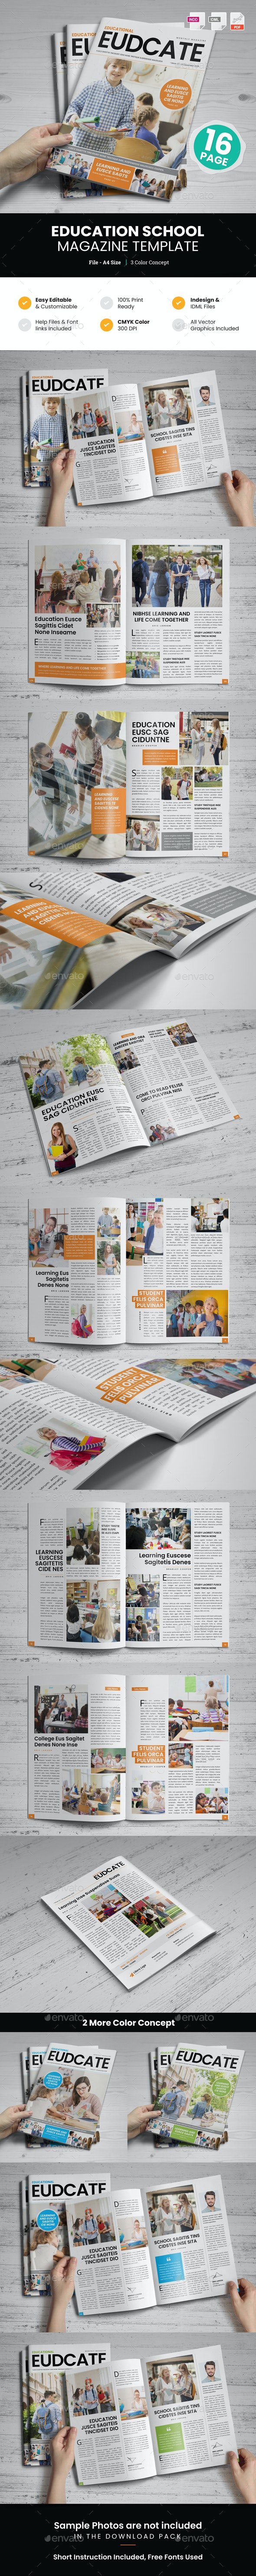 Education Magazine Template - Magazines Print Templates